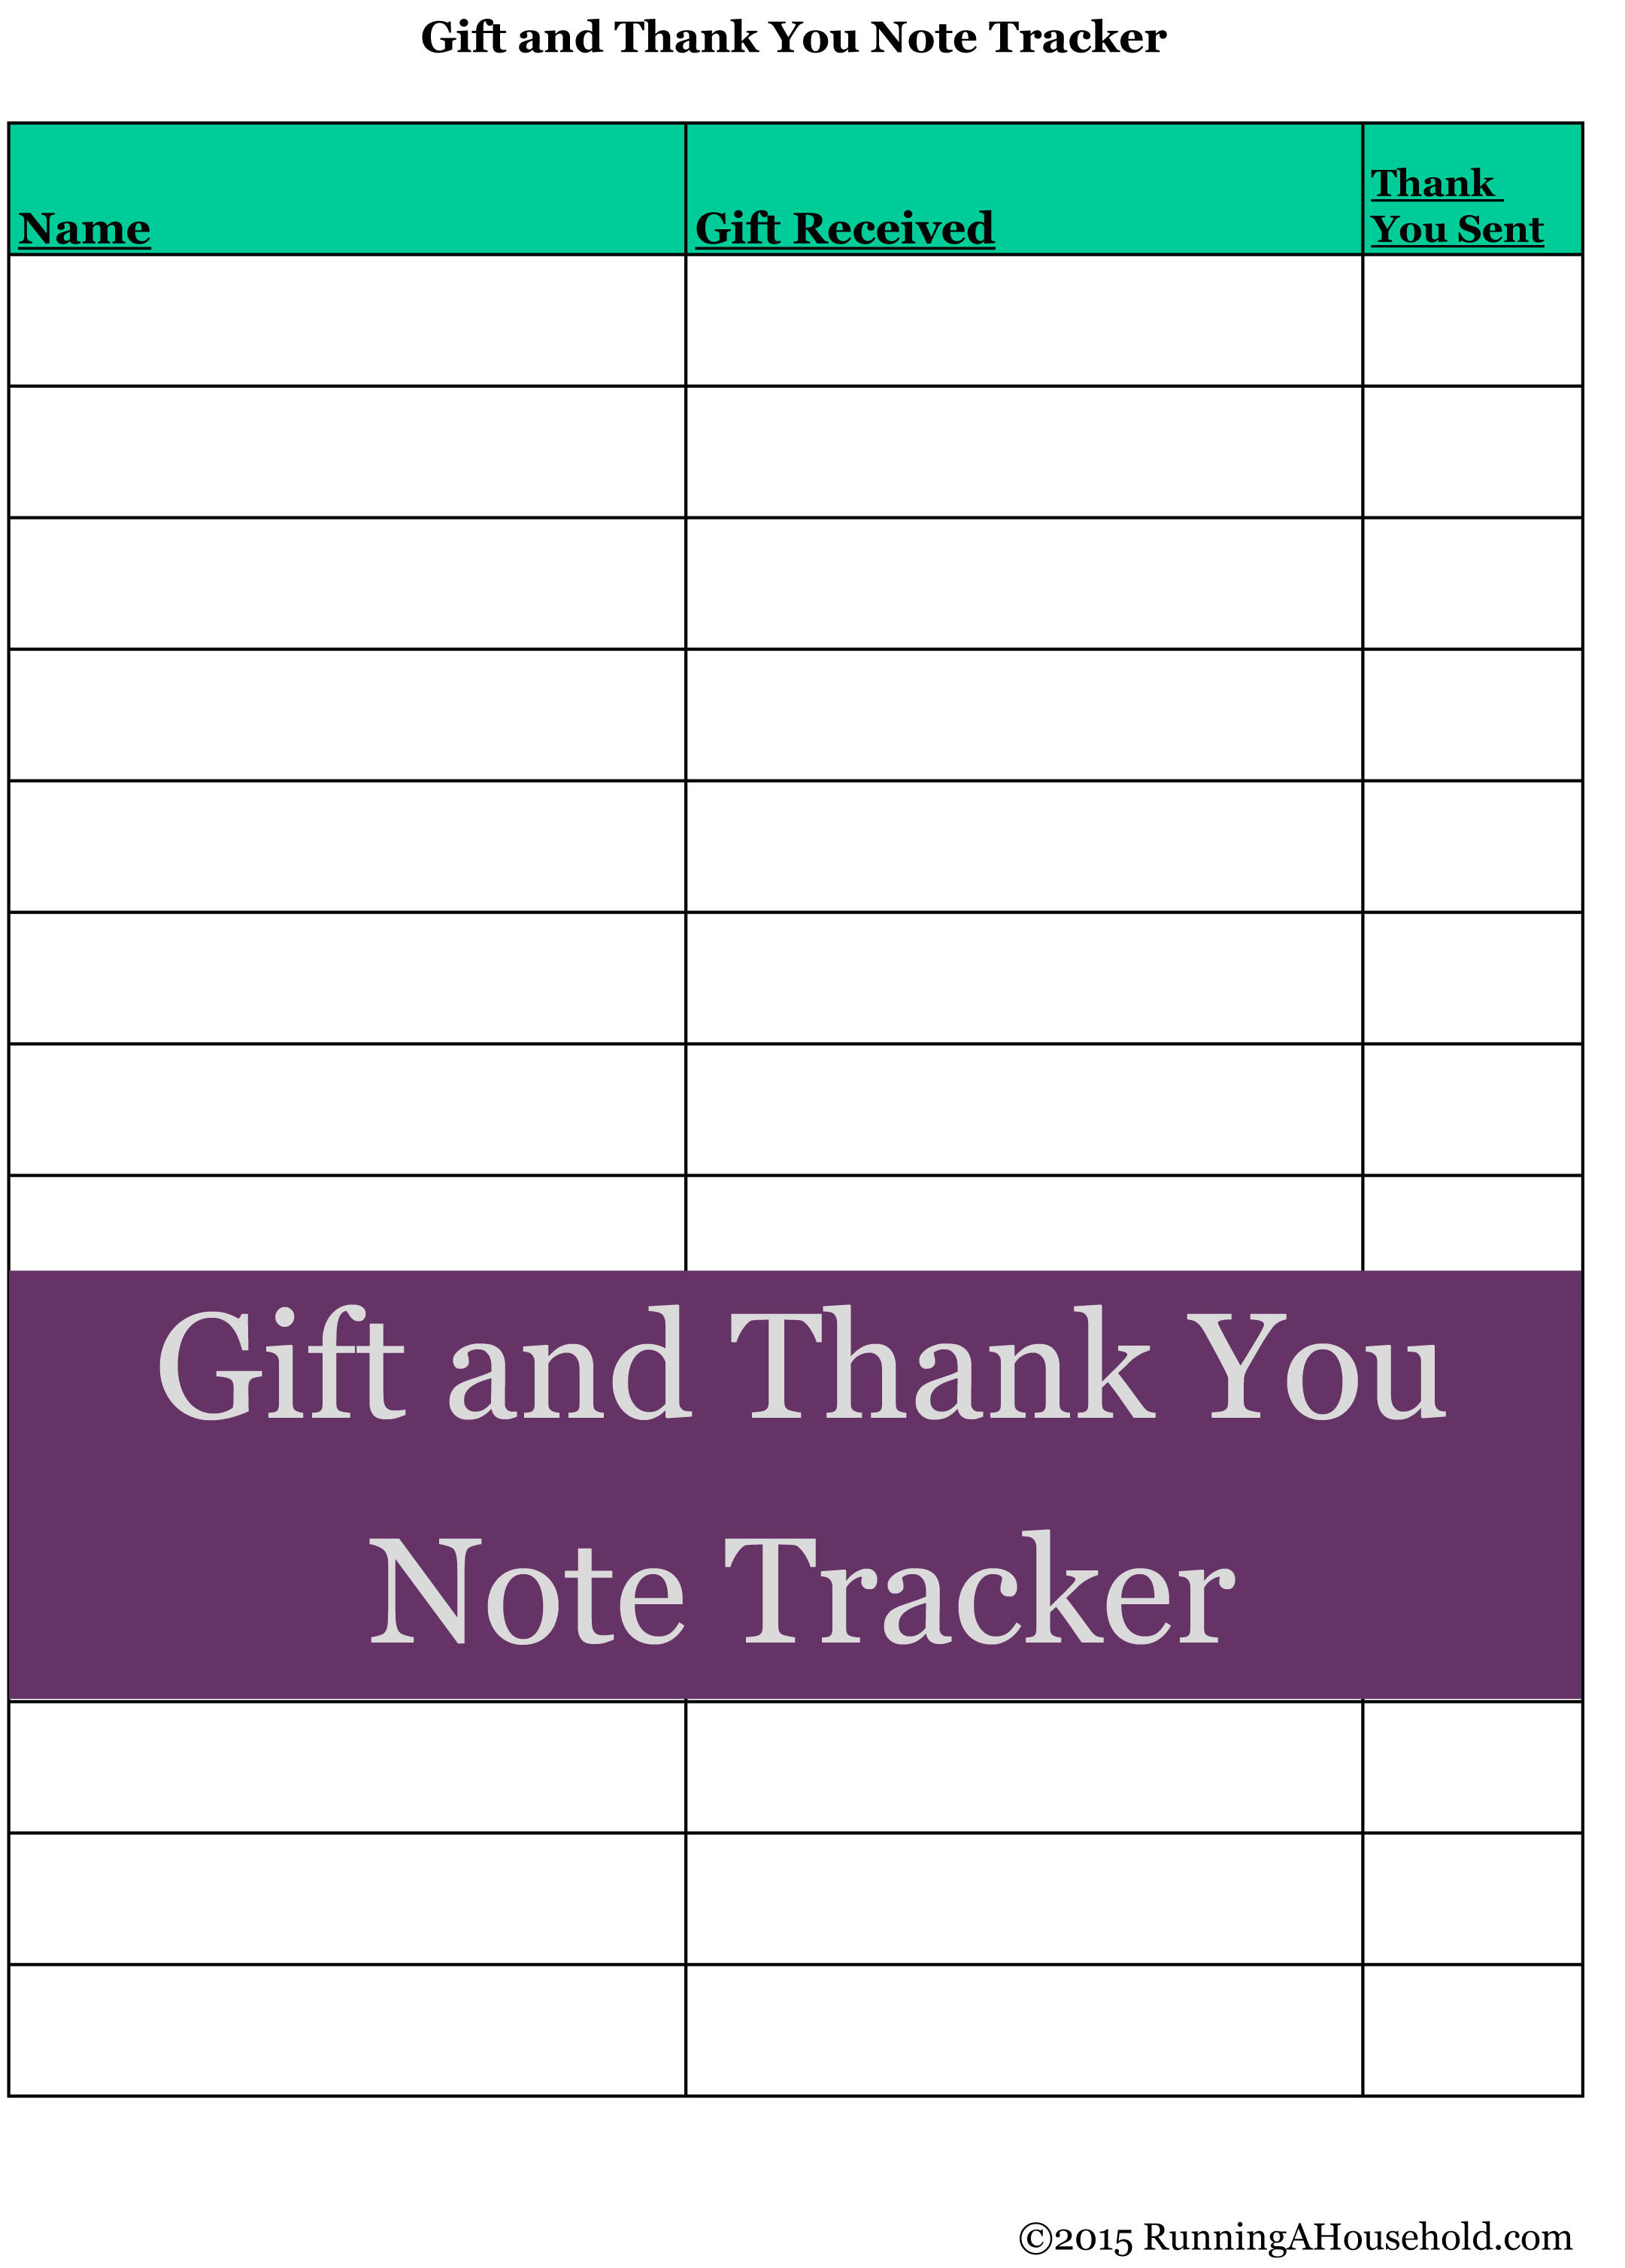 Printable thank you note tracker archives running a household send thank you notes for gifts thecheapjerseys Image collections